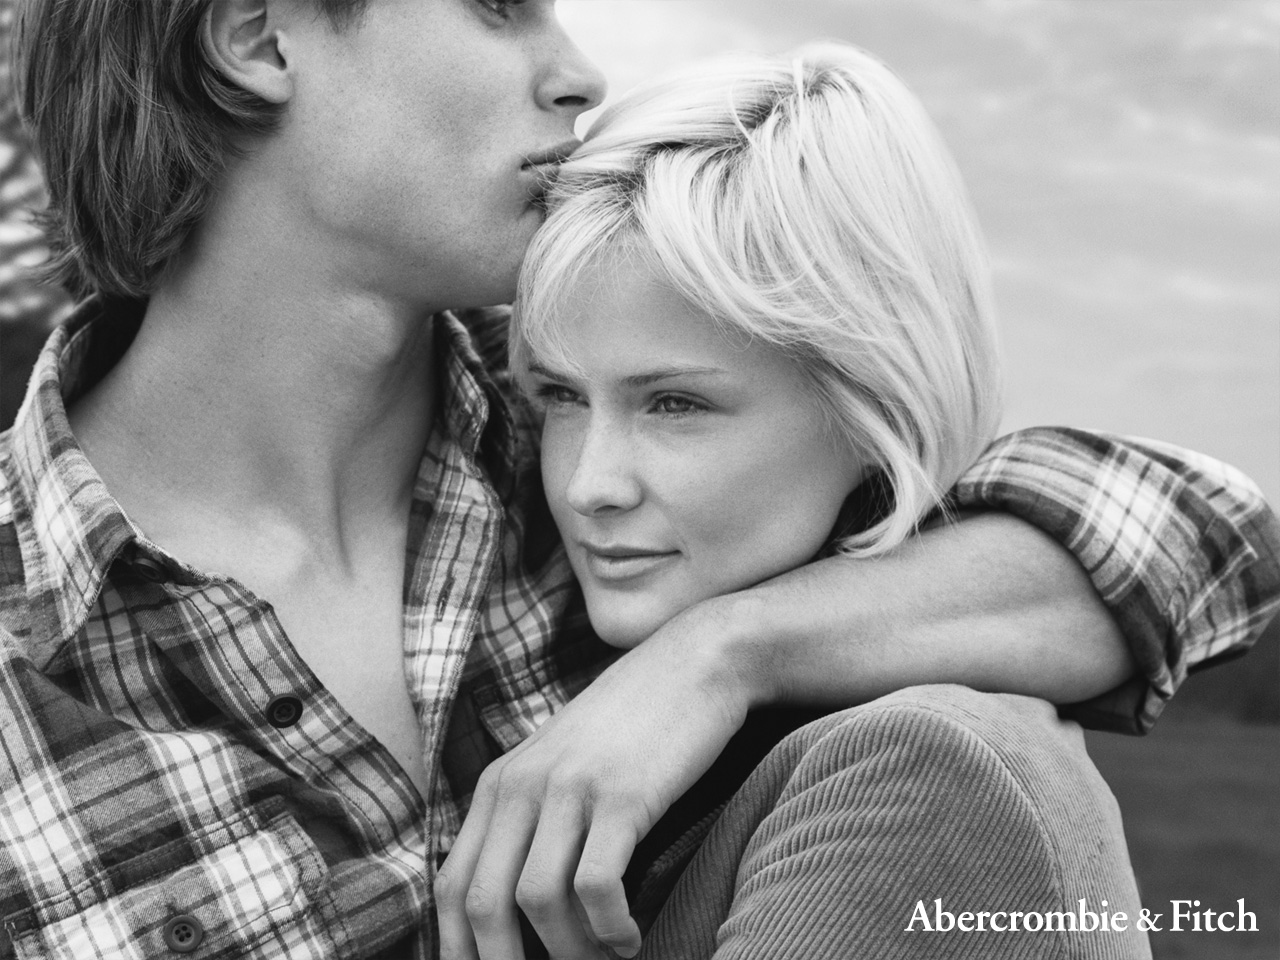 abercrombie-fitch-x-jpg-%C3%97-pixels-wallpaper-wp6001876